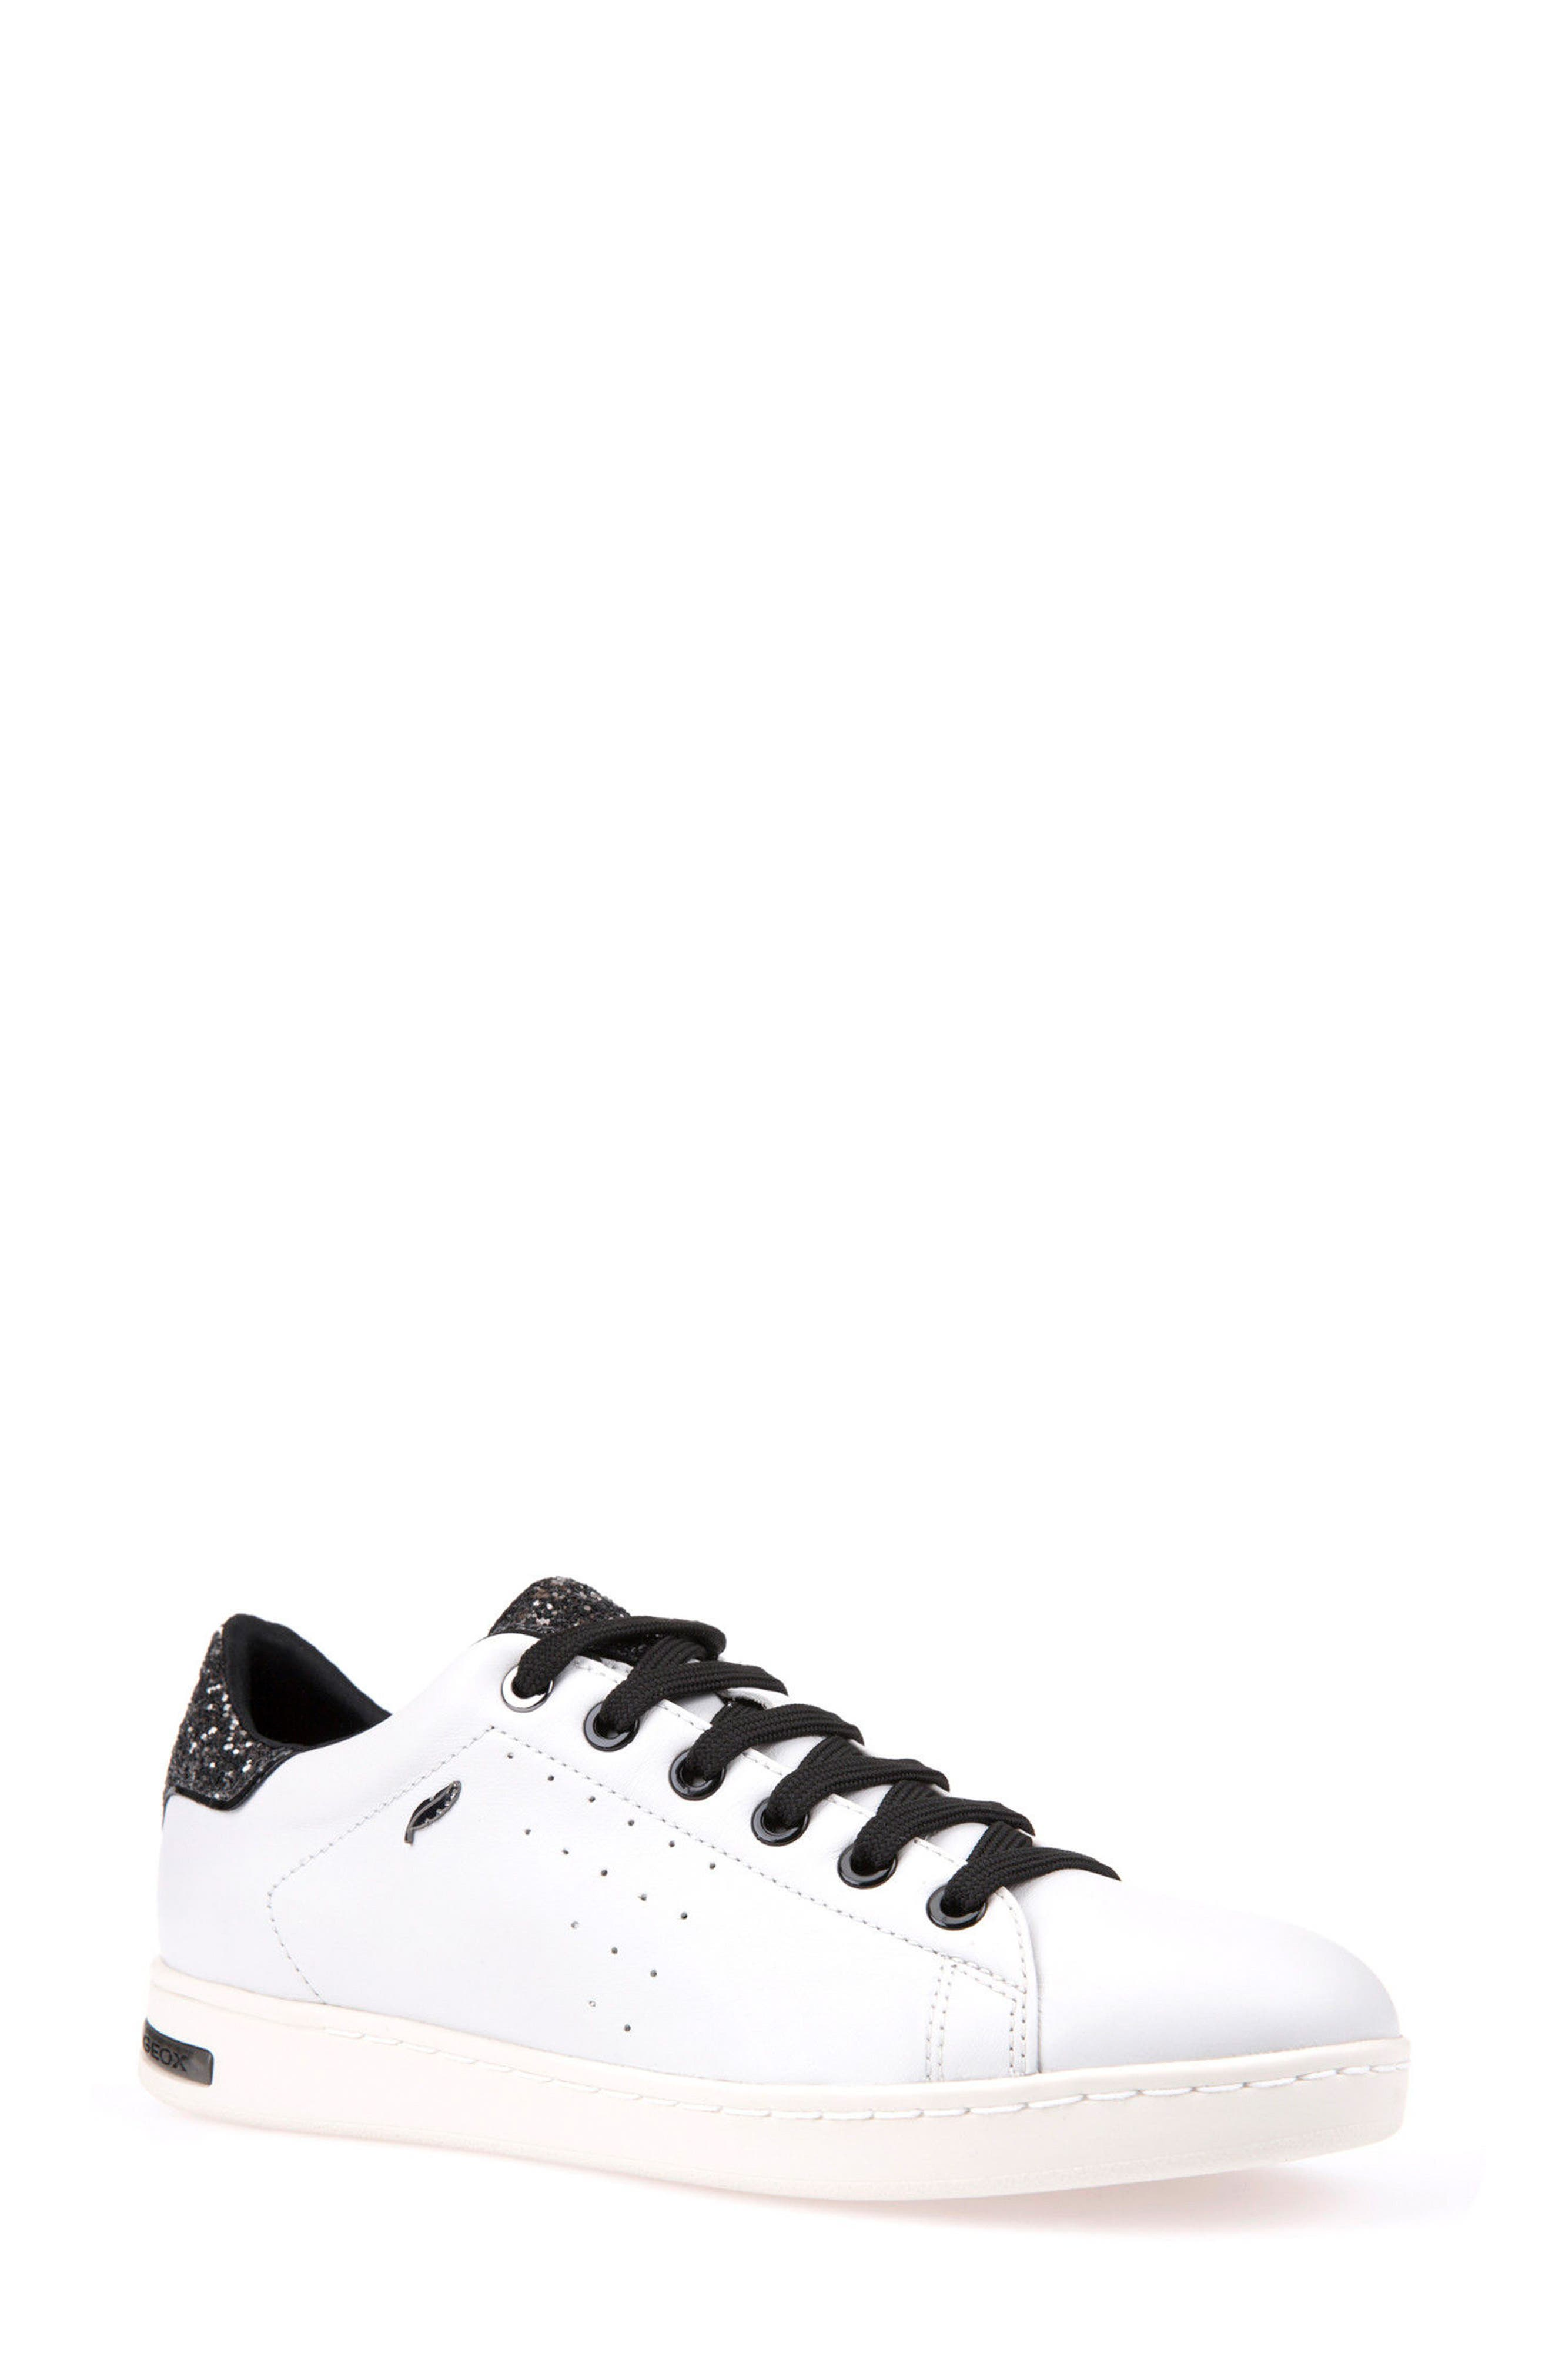 'Jaysen' Sneaker,                         Main,                         color, White/ Silver Leather